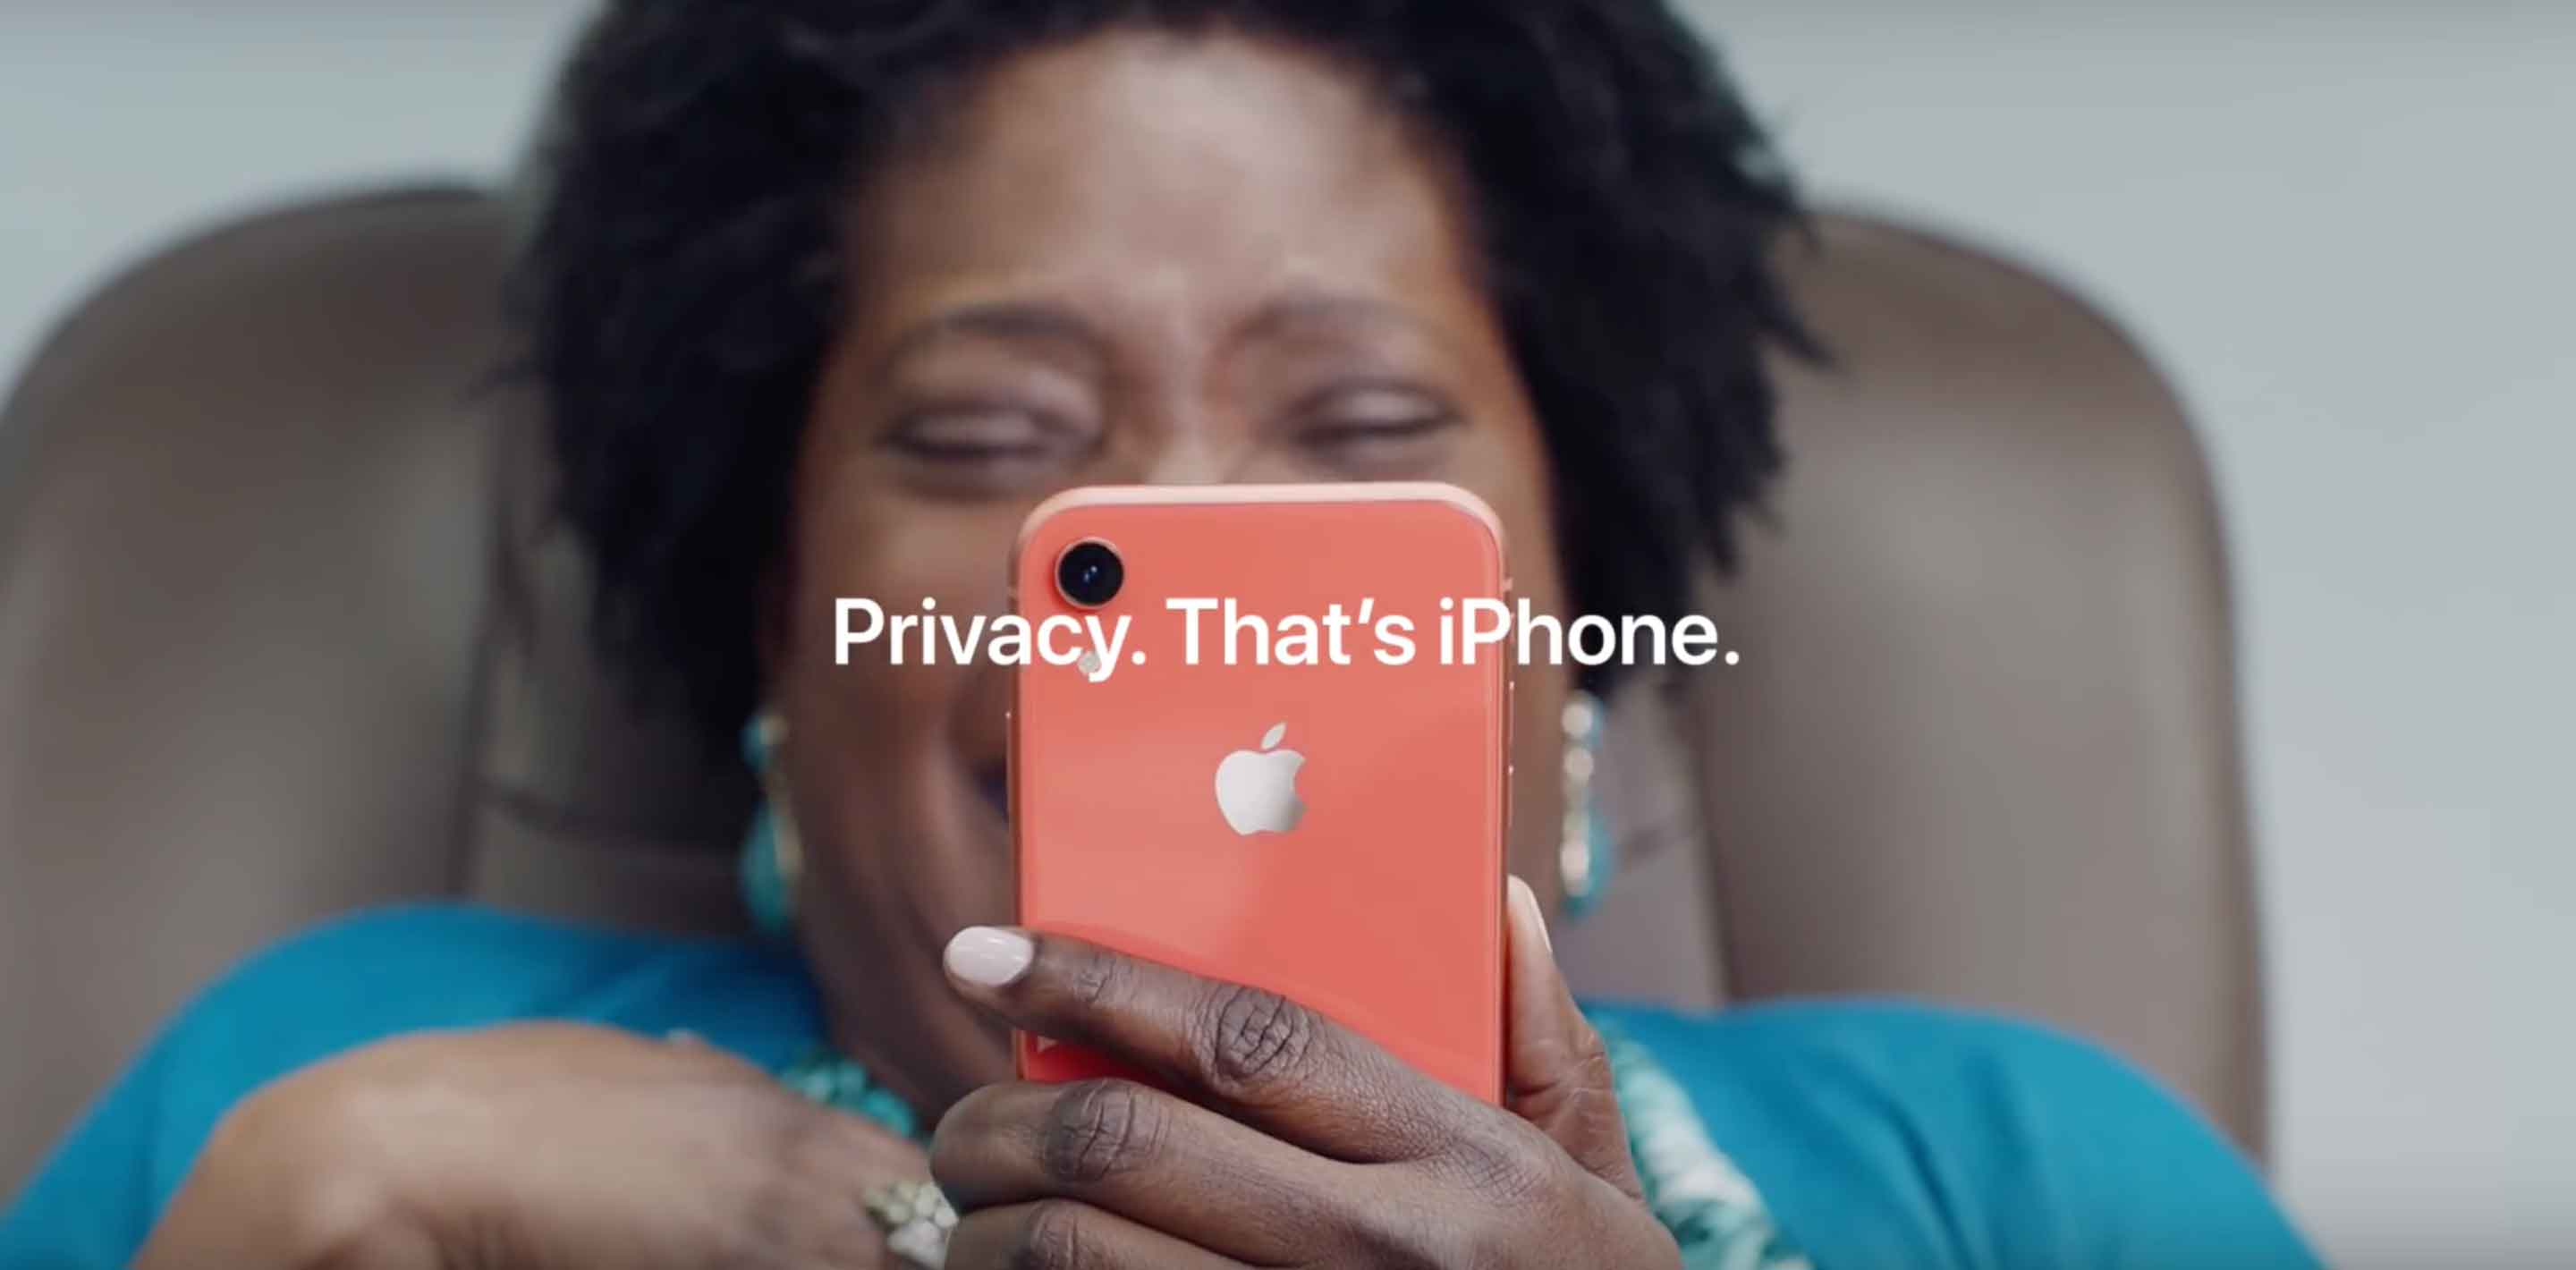 Privacy. That's iPhone